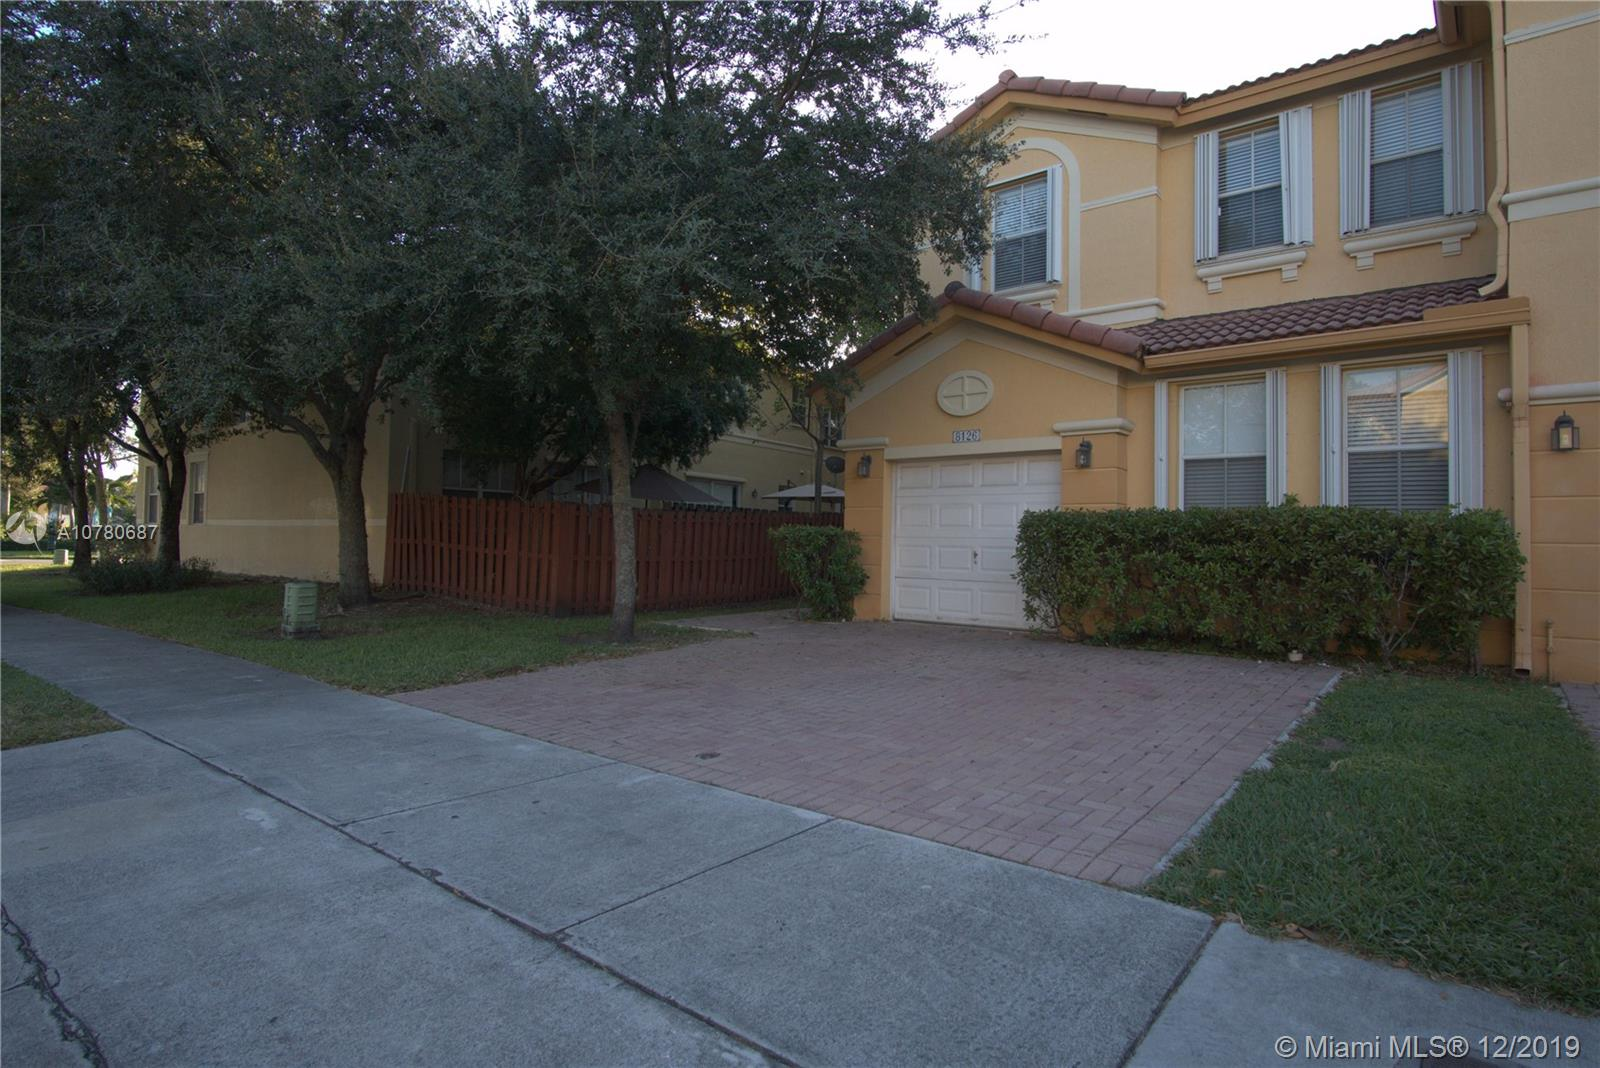 8126 NW 108 AVE #8126 For Sale A10780687, FL